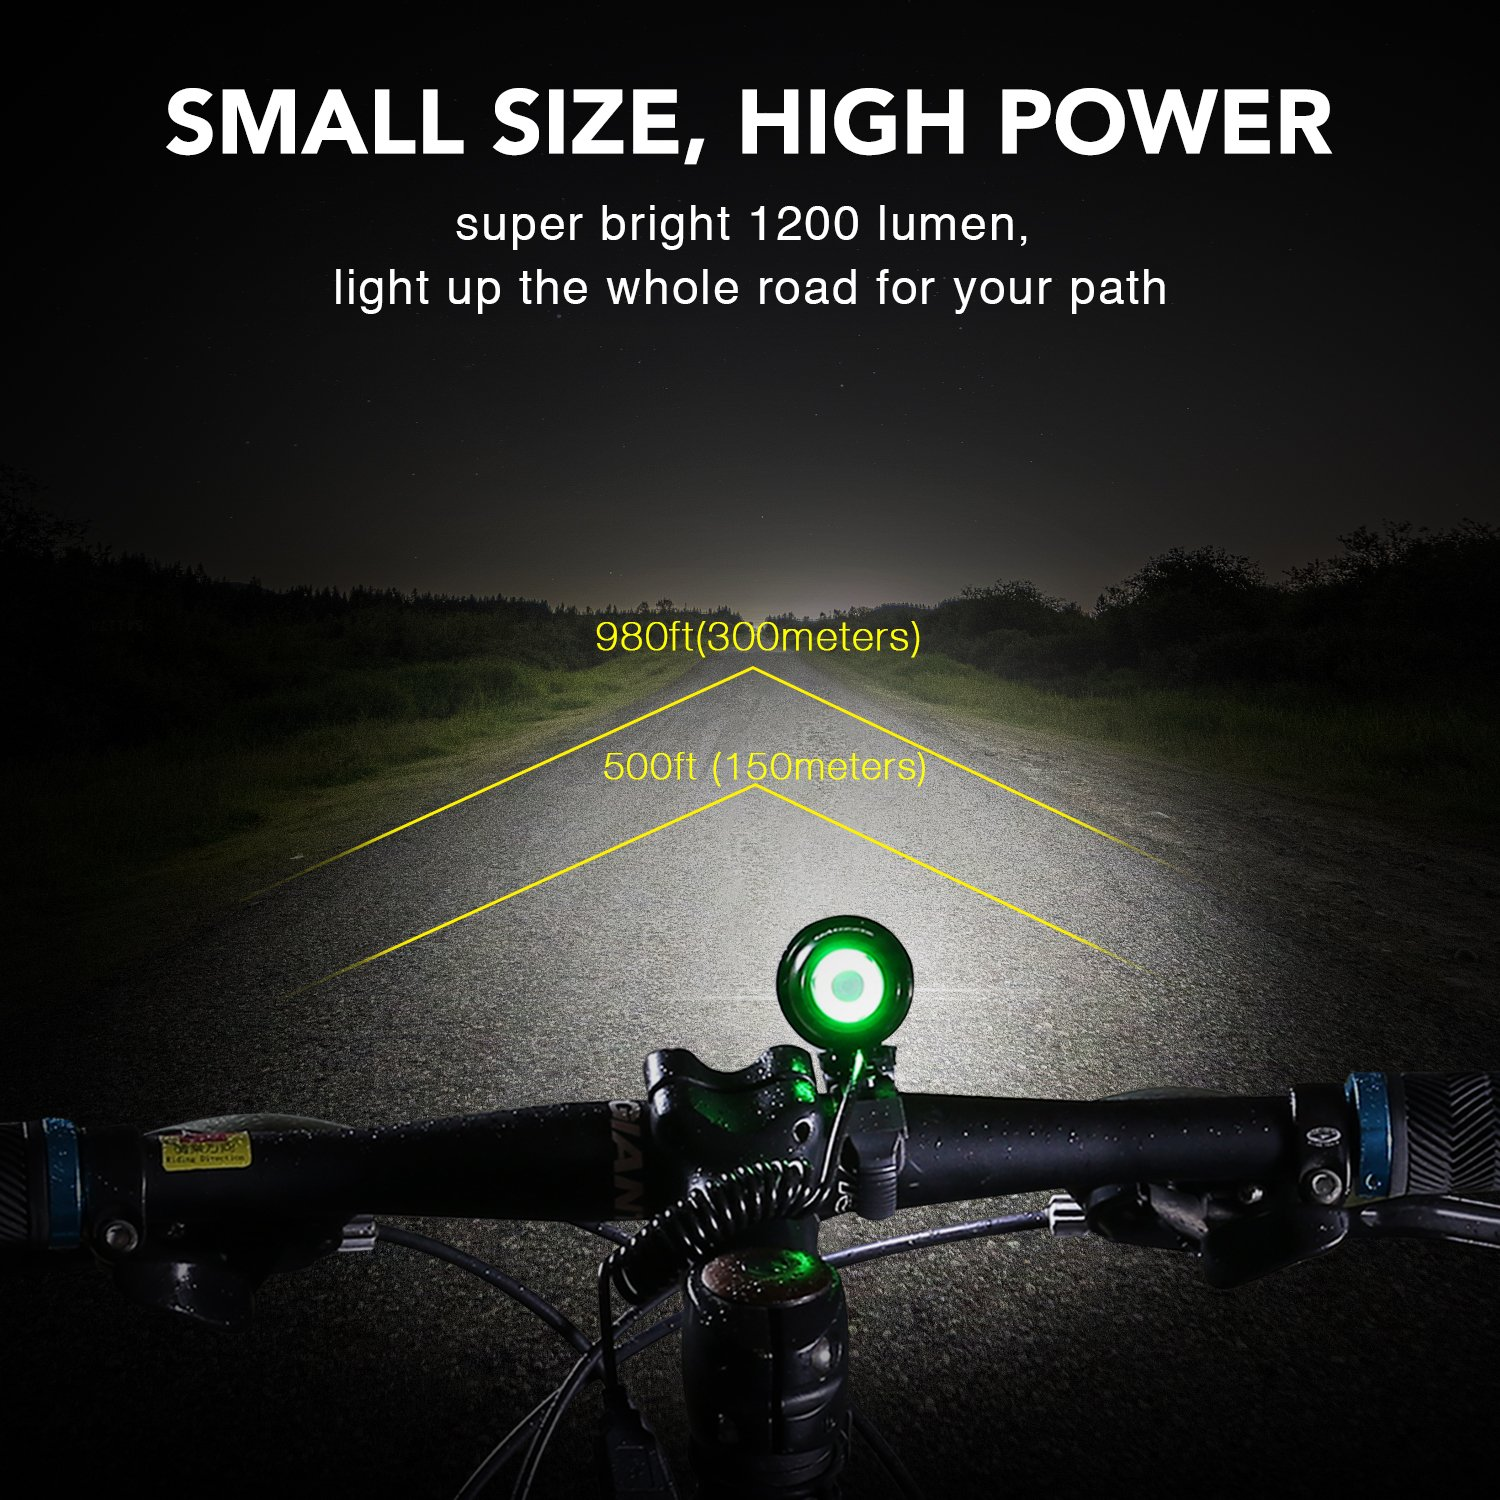 MOGZZi LED Bike Lights Set USB Rechargeable Bicycle Lights Bright Front 1200 Lumen LED Head Torch Headlamp Waterproof with Battery Pack and Free Safety Taillight Included